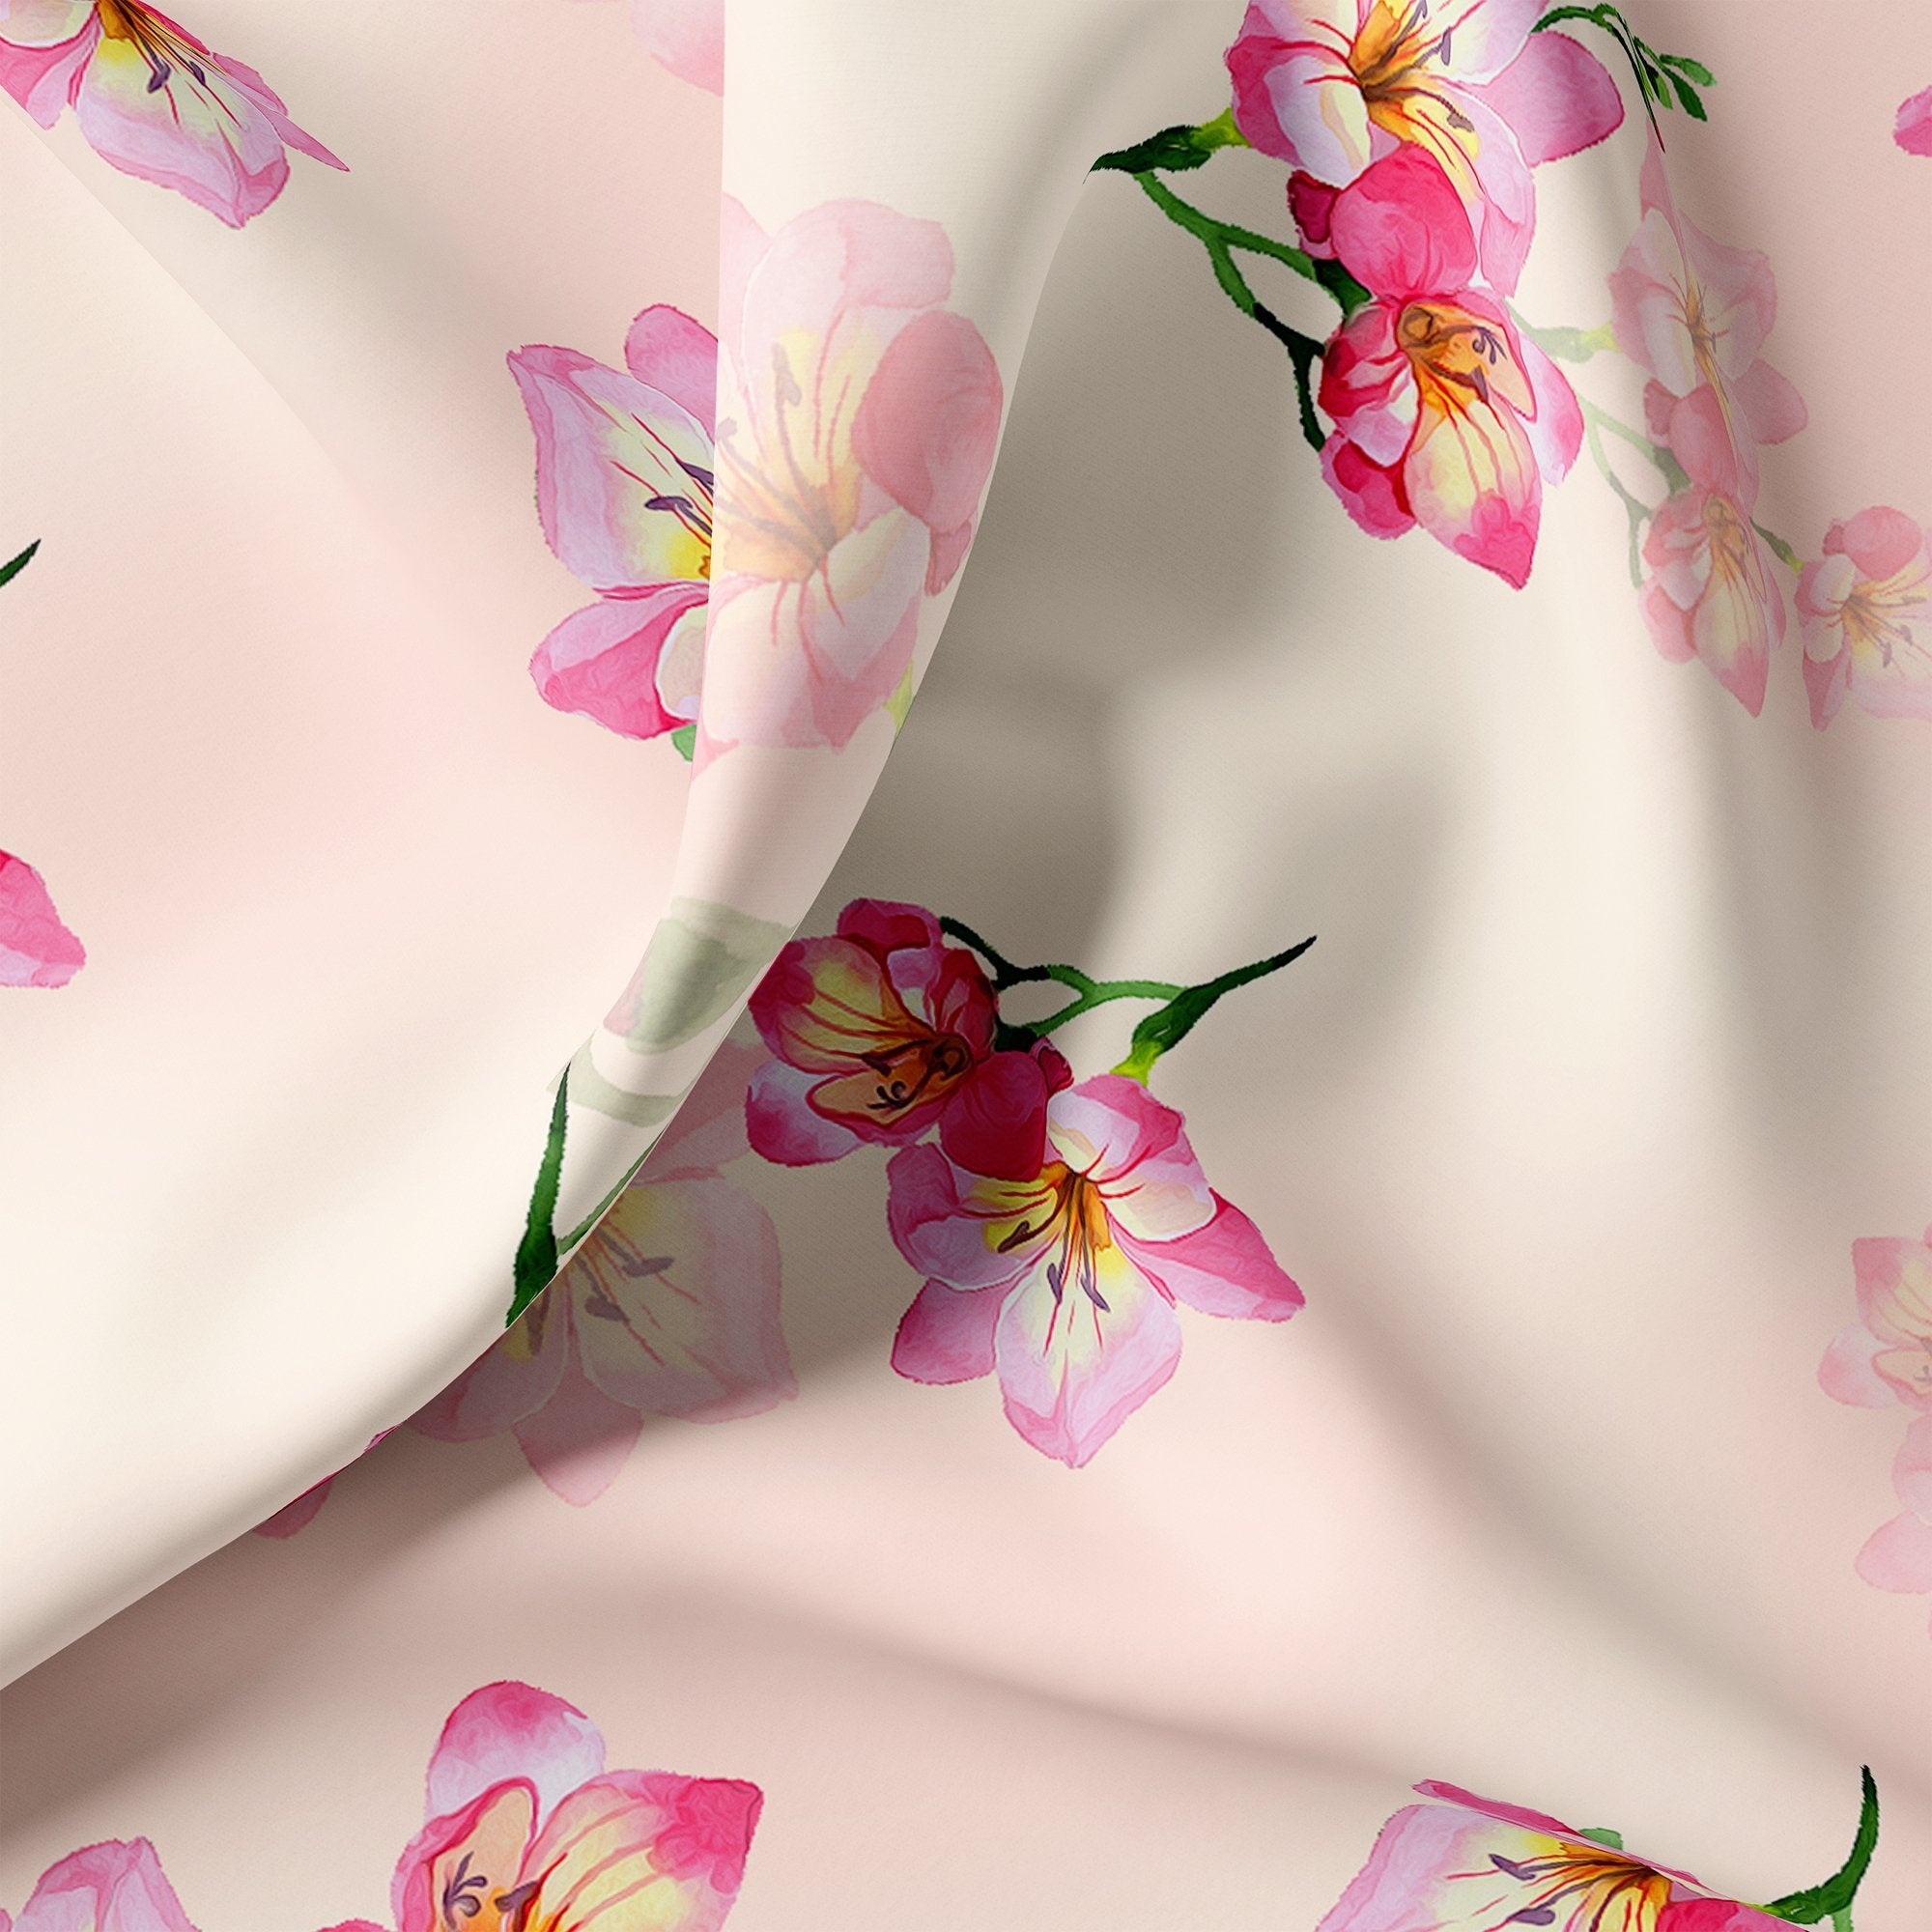 Colorfull Floral Digital Printed Fabric - FAB VOGUE Studio. Shop Fabric @ www.fabvoguestudio.com